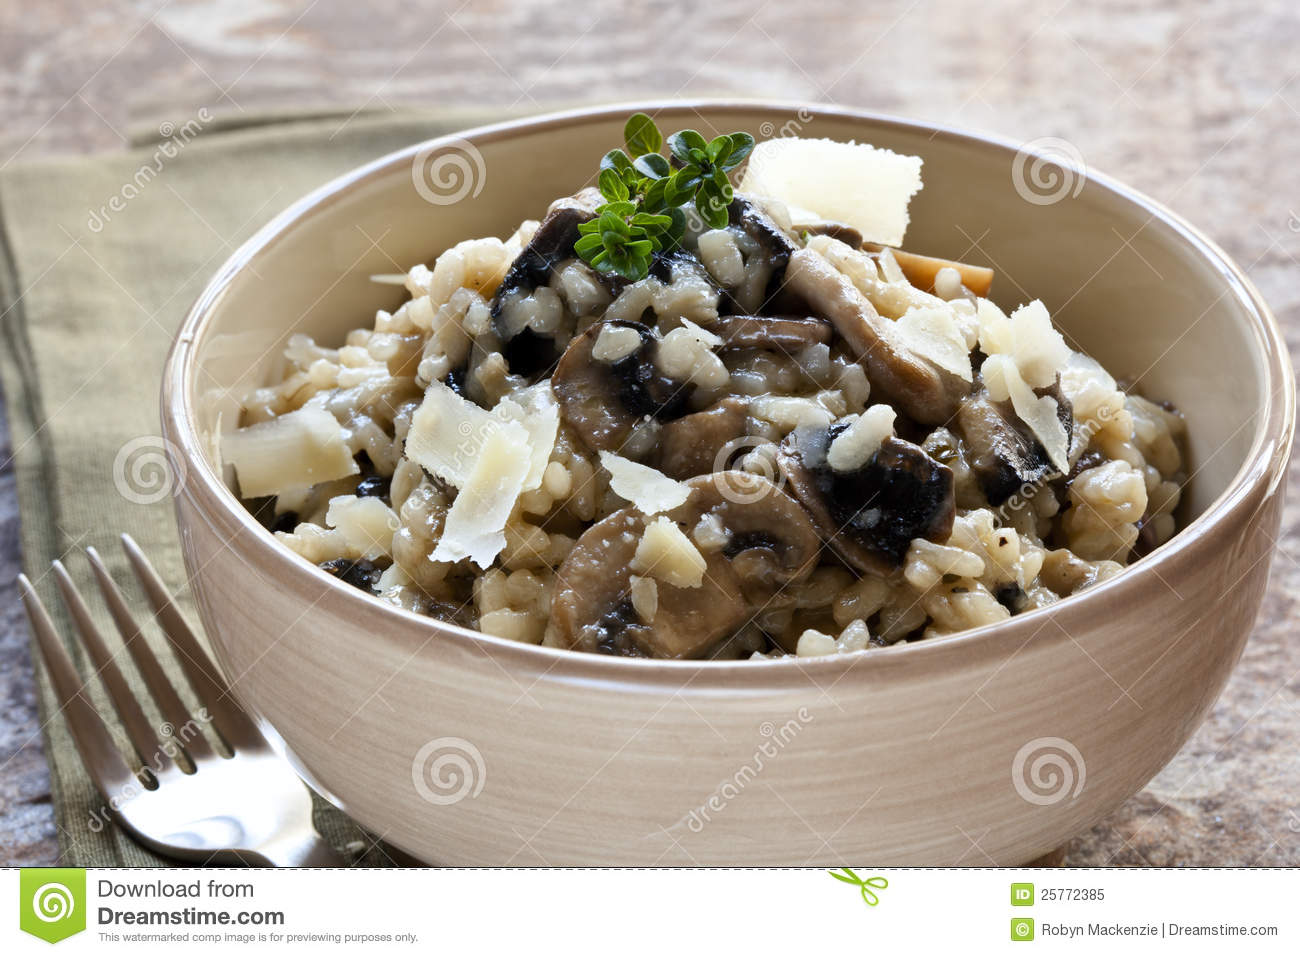 ChampinjonRisotto